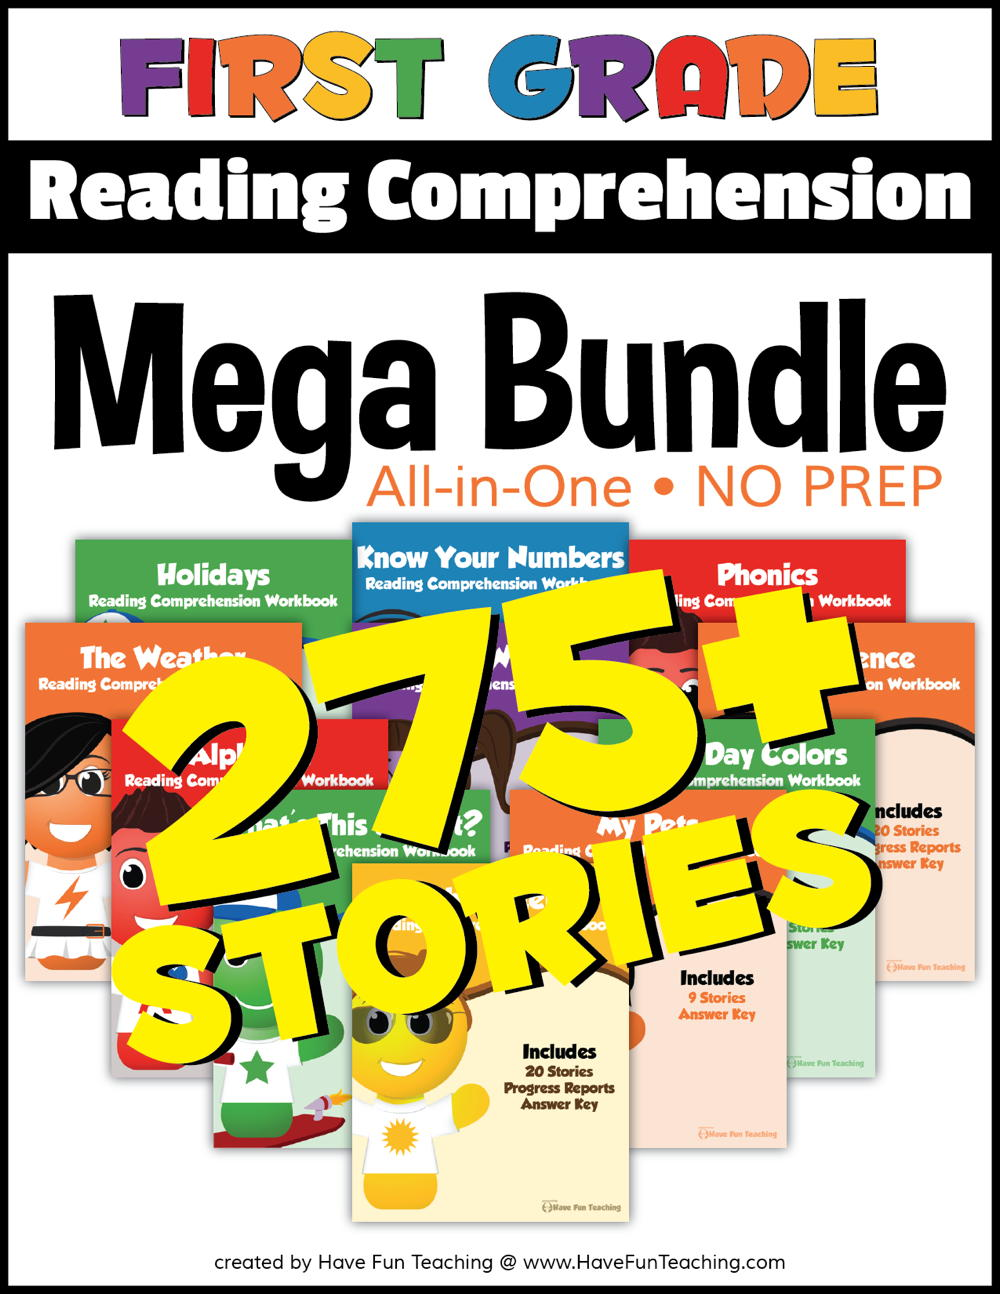 First Grade Reading Comprehension - No Prep All In One Mega Bundle